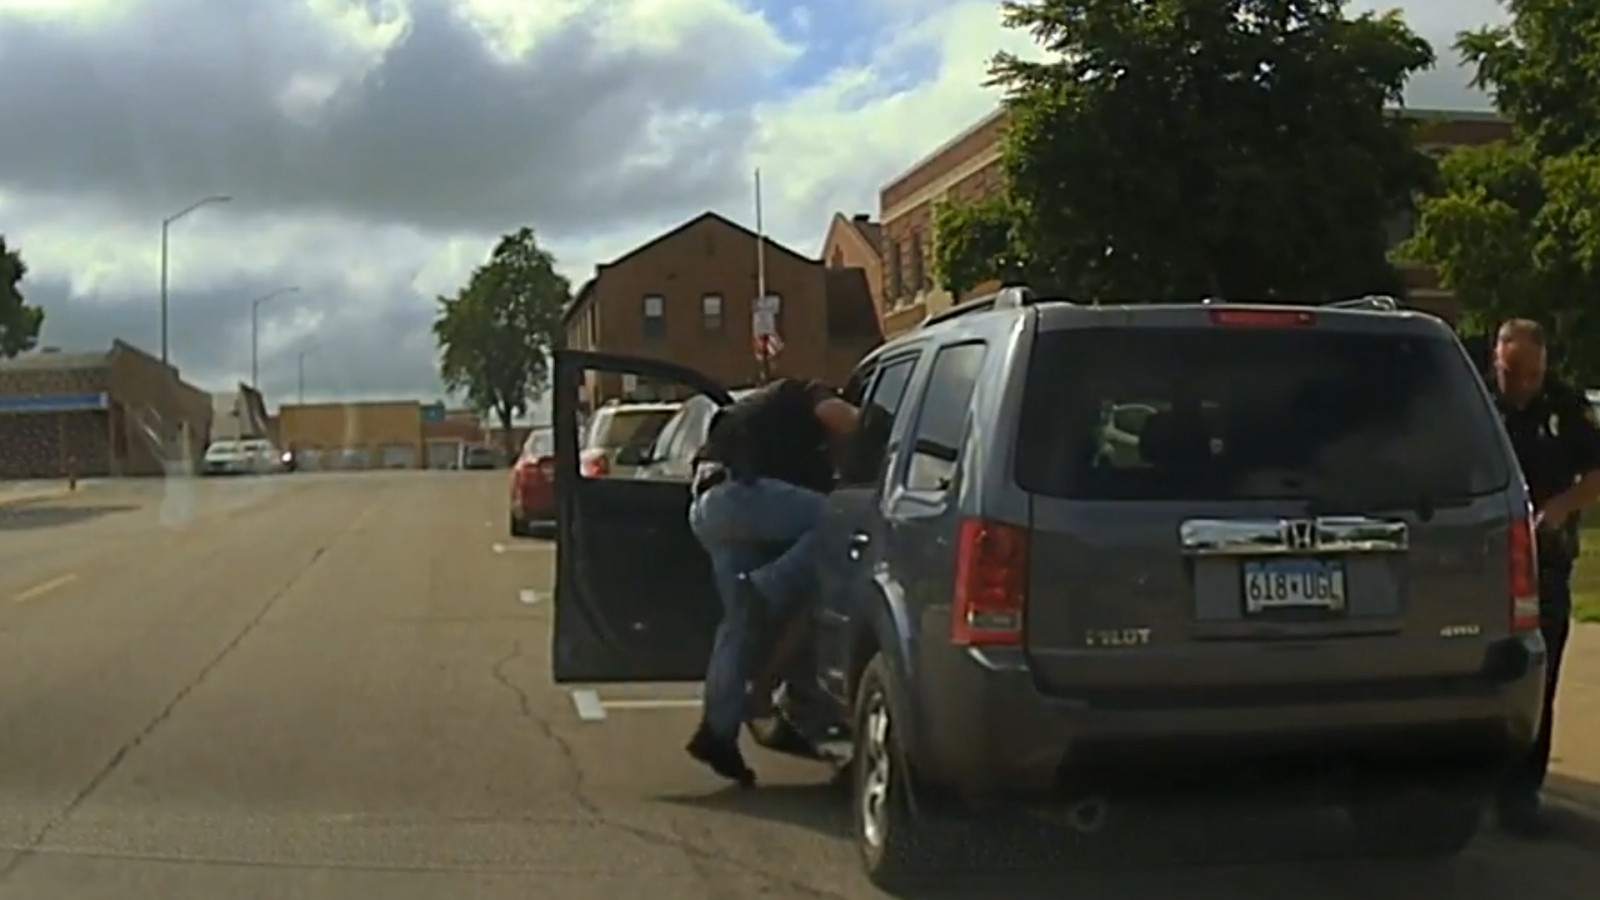 dashcam-footage-released-shows-police-officer-assaulting-motorist